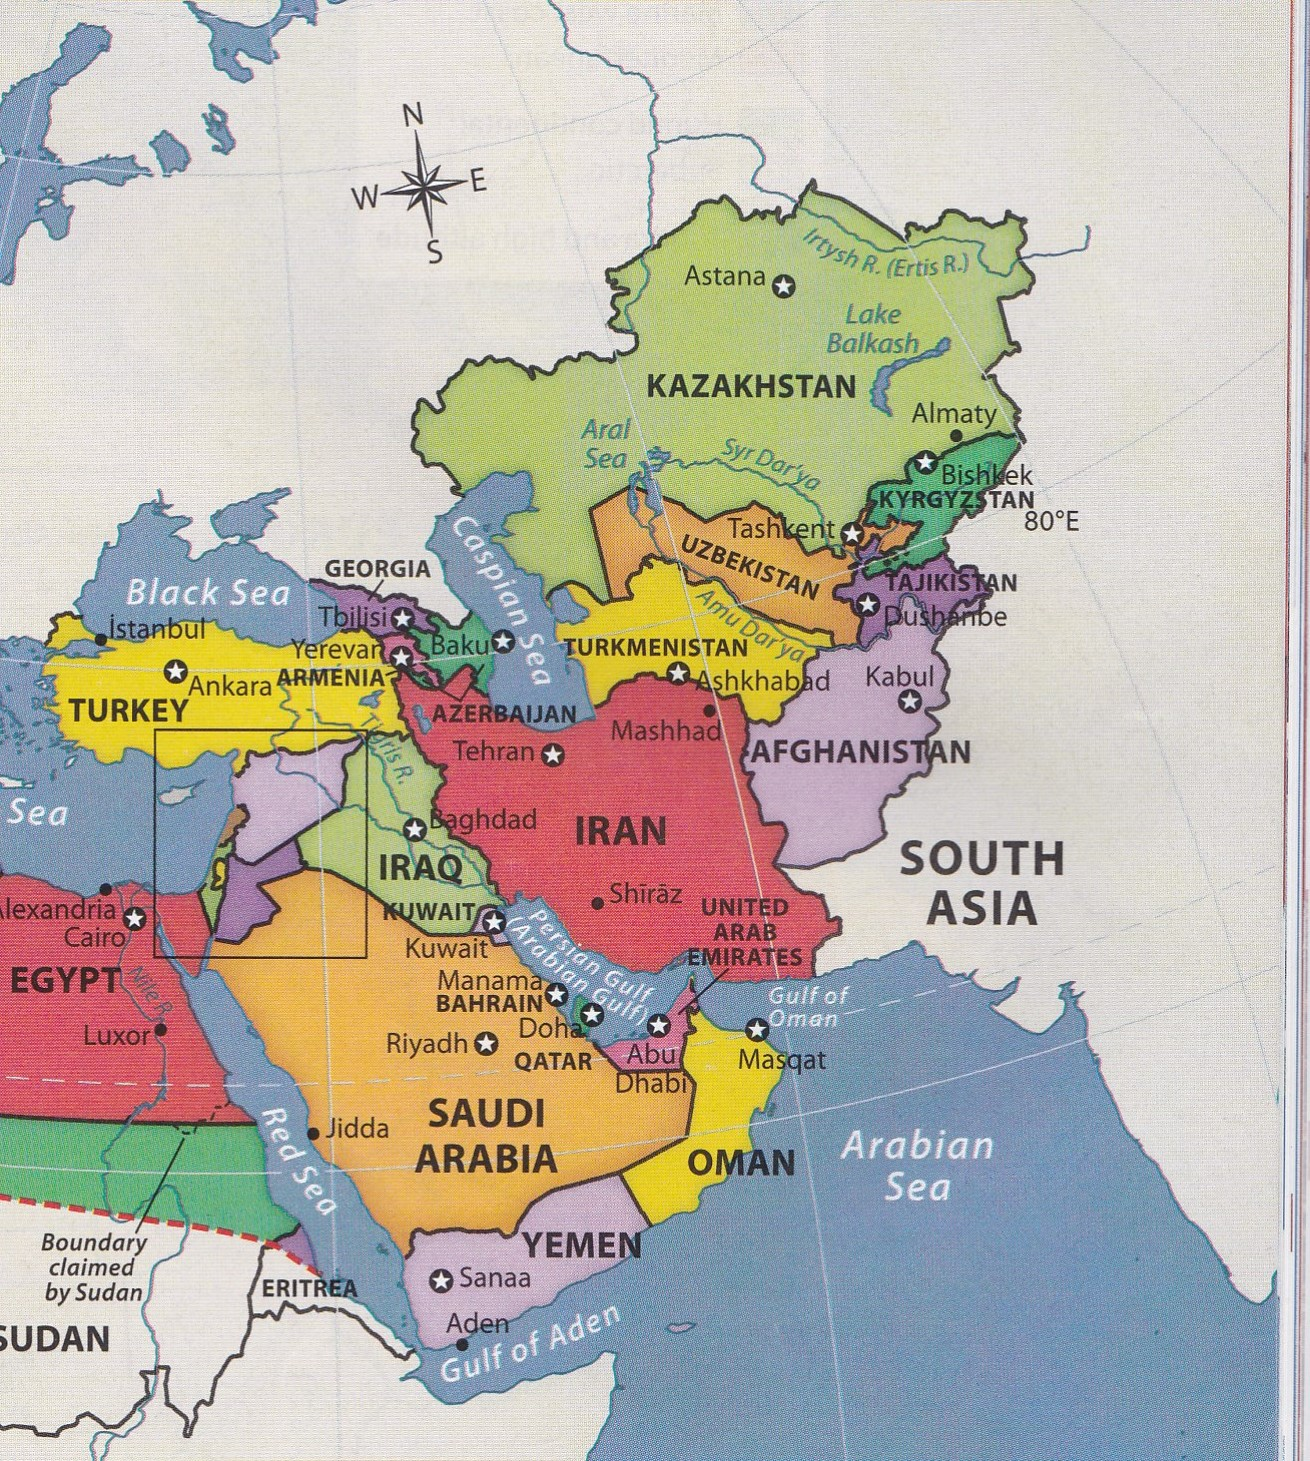 South western asia map full hd maps locations another world usa map large south west asia map large world map map of southwest usa map large south west asia map large world map map of southwest asia image of gumiabroncs Images